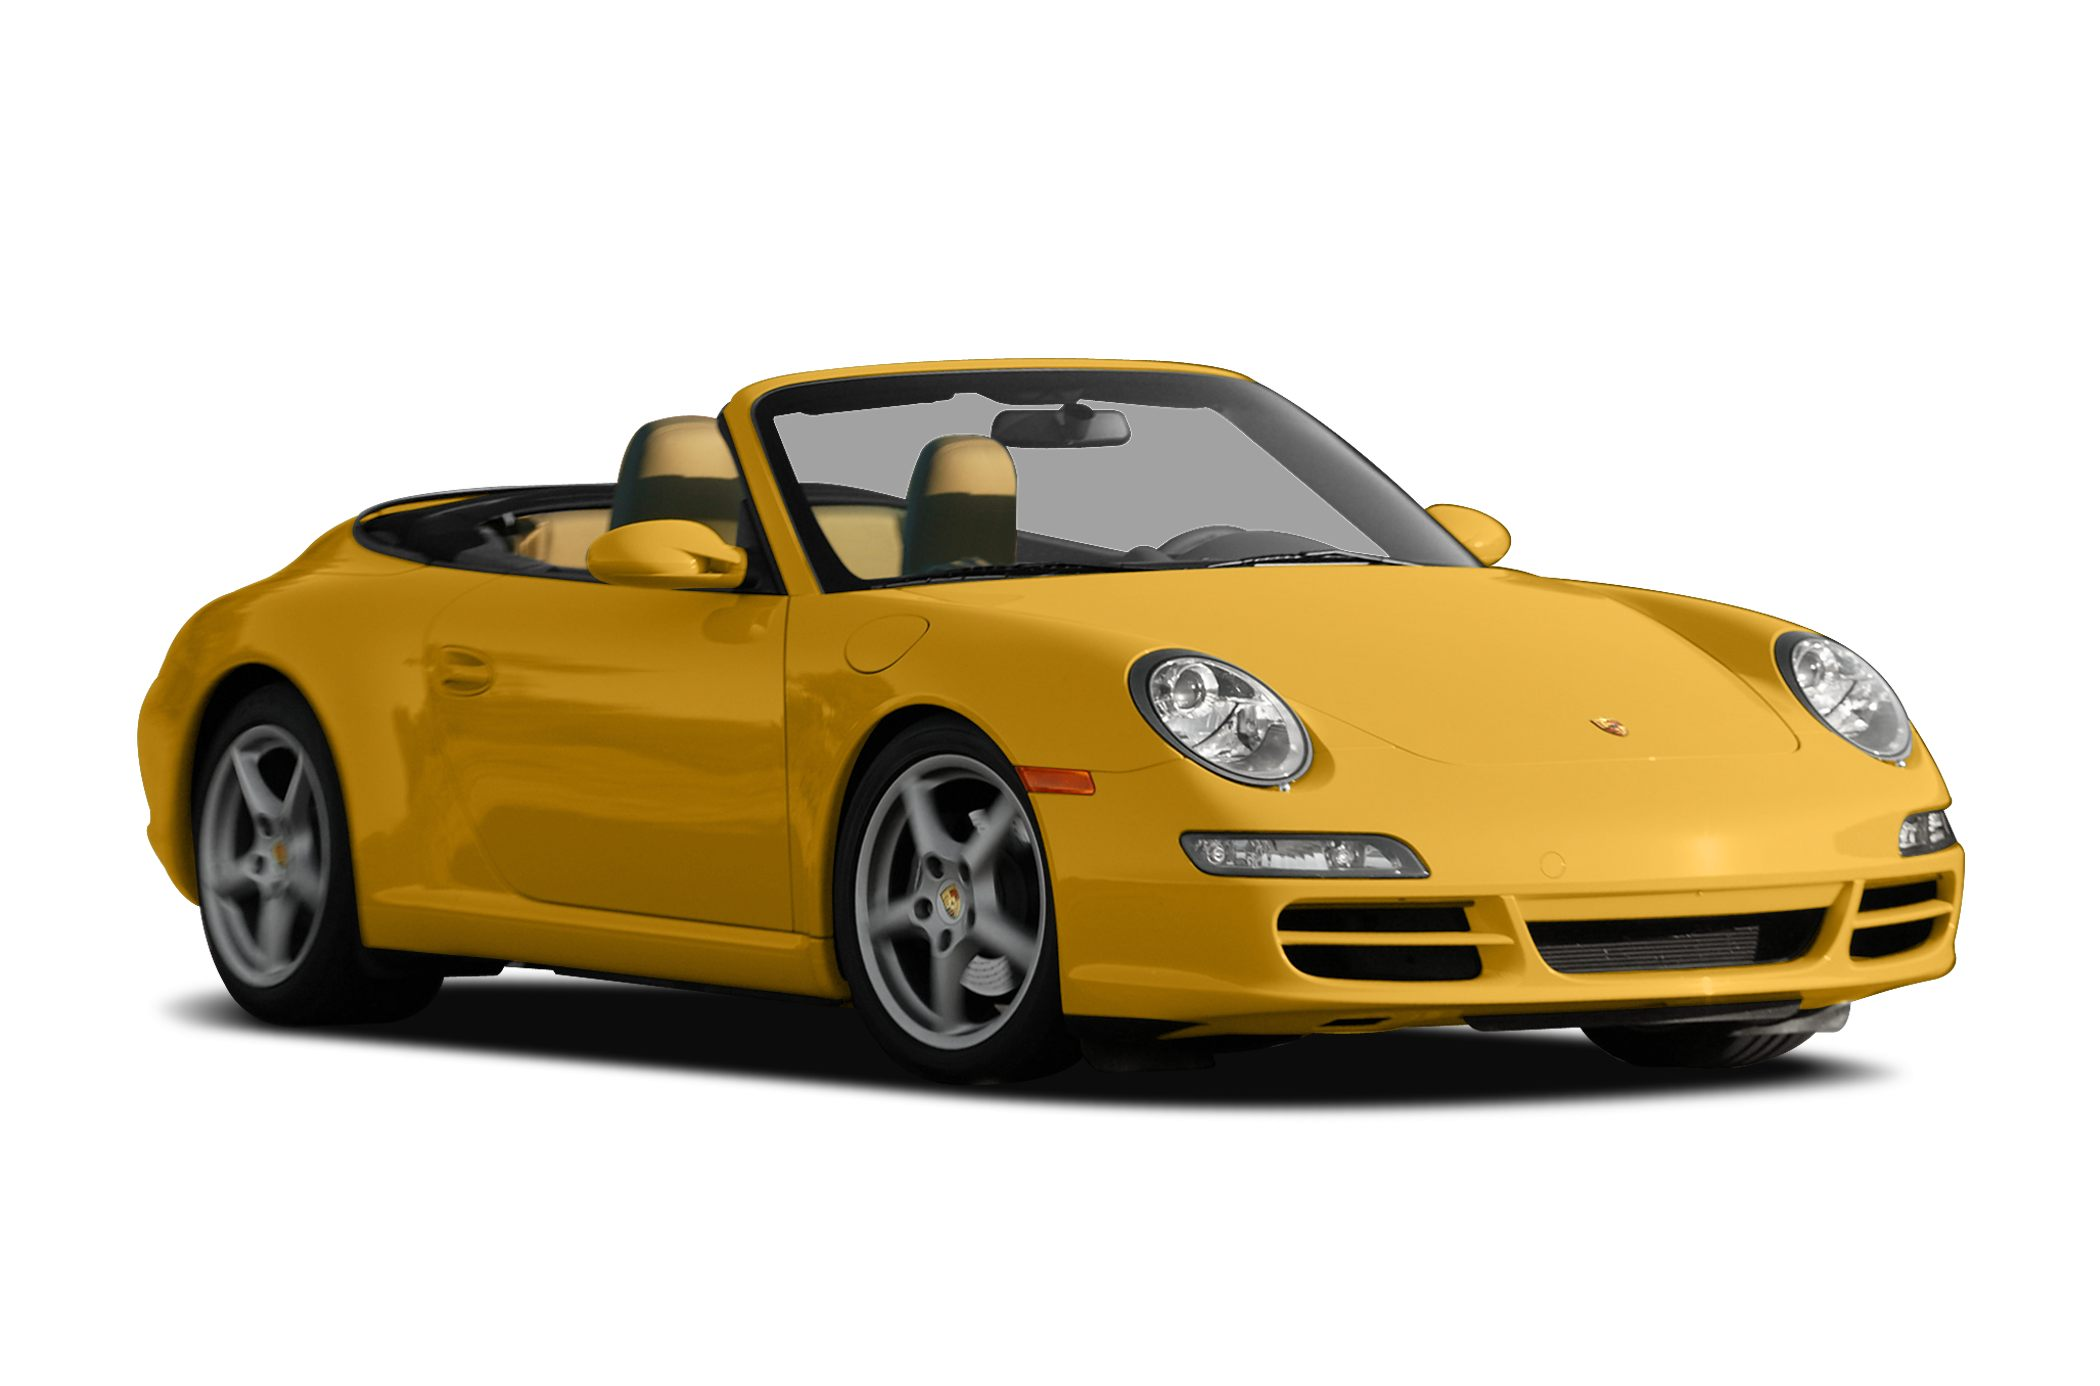 2007 Porsche 911 Carrera S Proud to be named 2016 DEALER of the YEAR in the used vehicle category